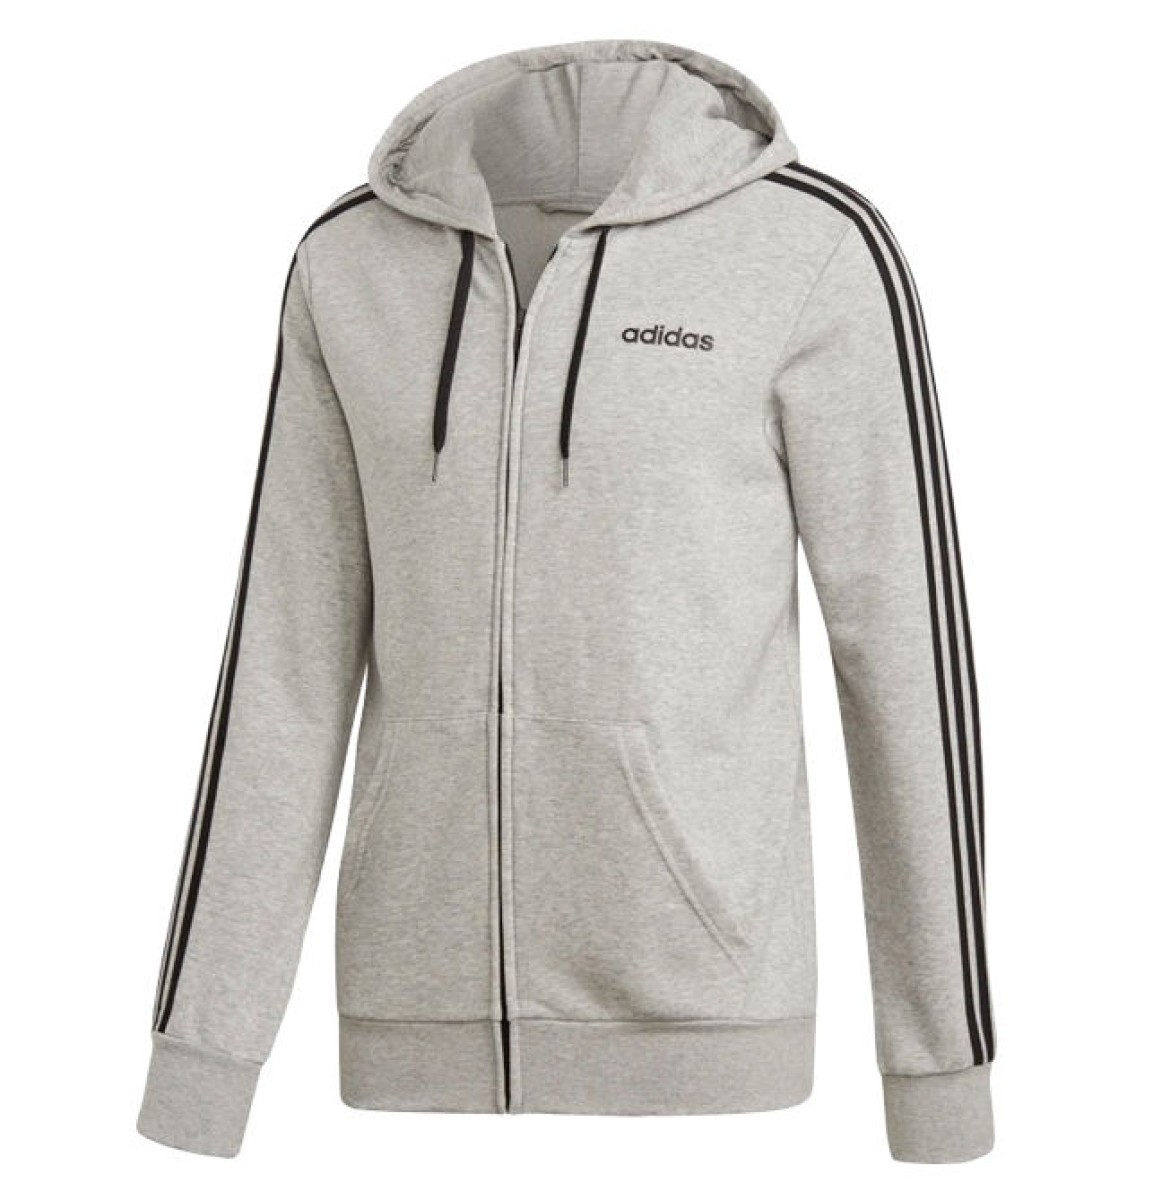 adidas sweater jacket grey